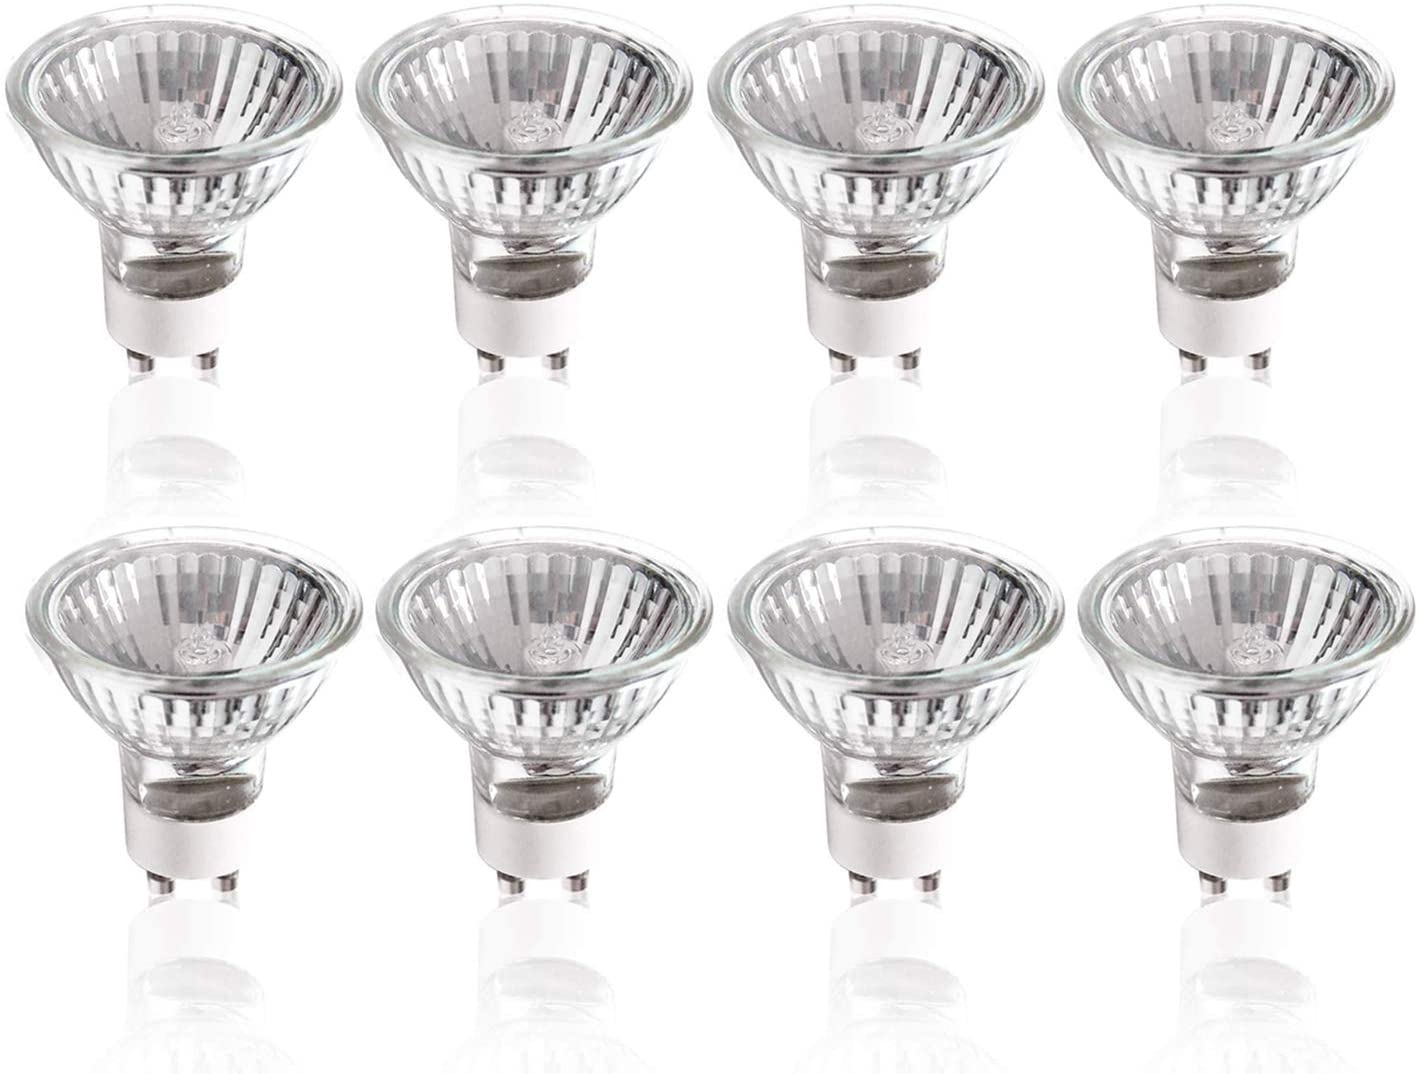 (45% Clearance) eTopLighting [8 Pack] GU10 120 Volt 50 Watt GU10 Halogen Light Bulb, GU10 50W Halogen Lamp Bulb Light, 120V 50W, (8 X) GU10-120V-50W, VPL1262